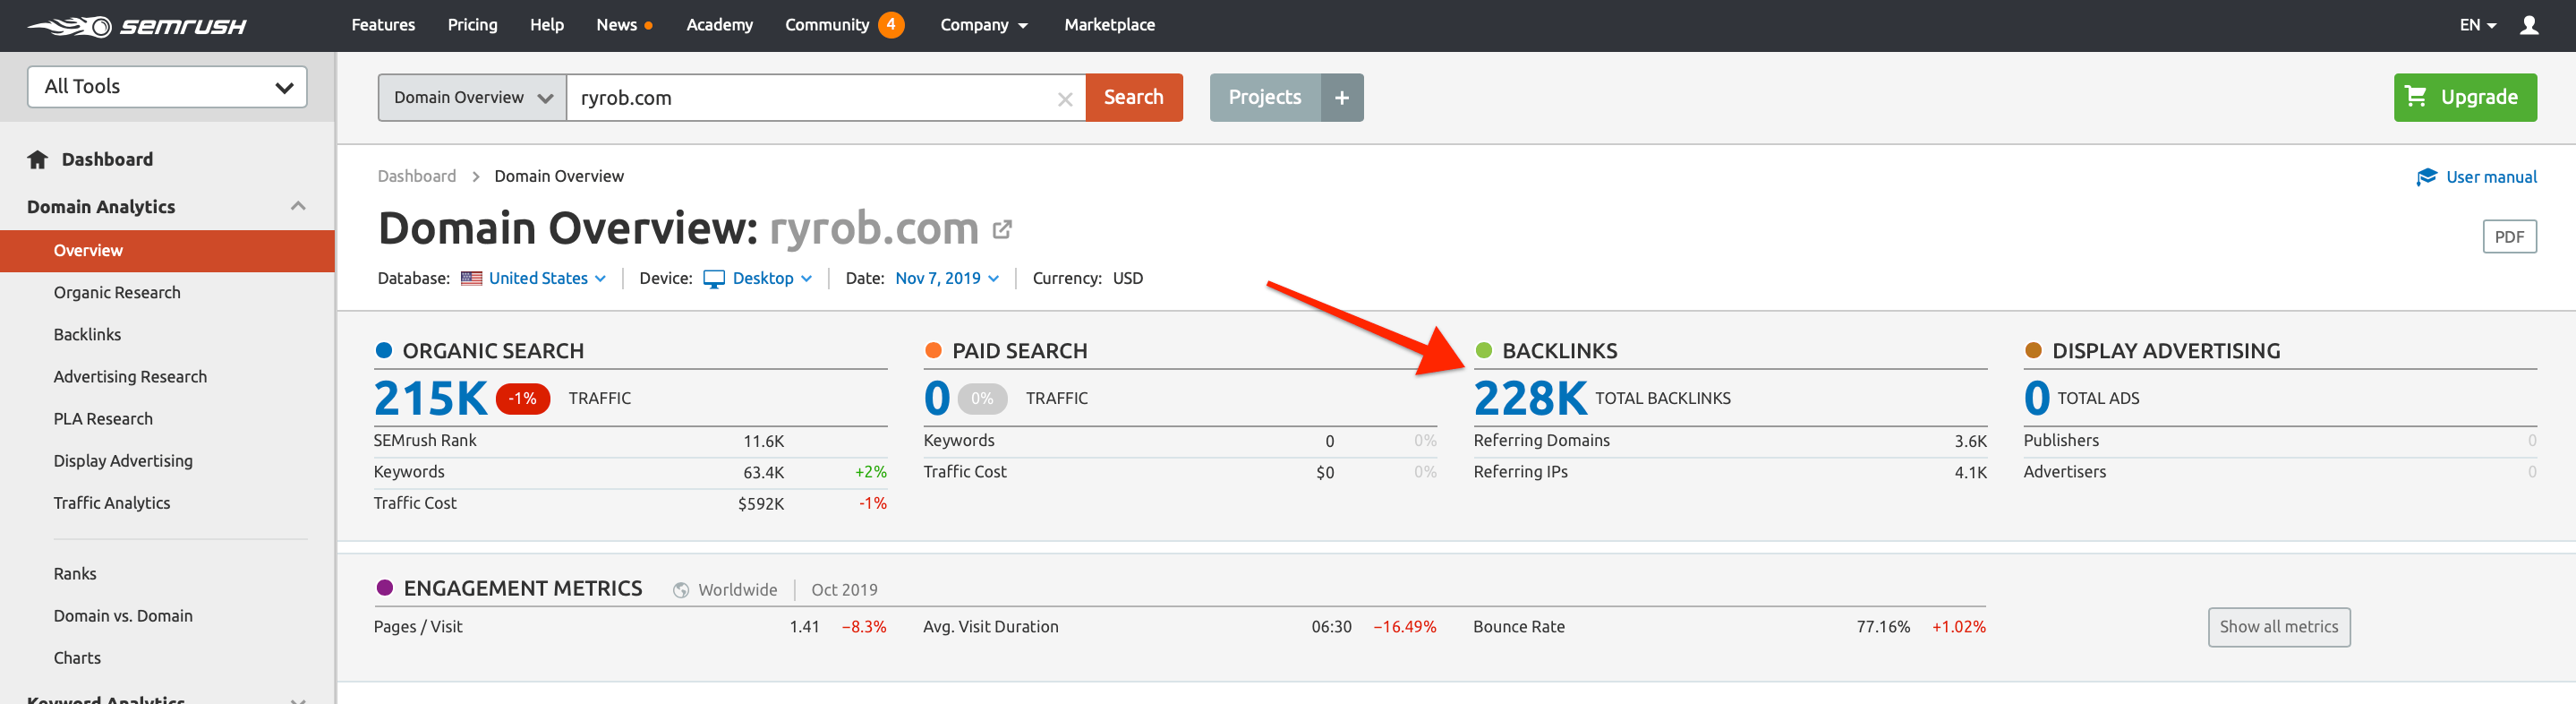 backlink-profile-competitor-analysis-using-SEMrush